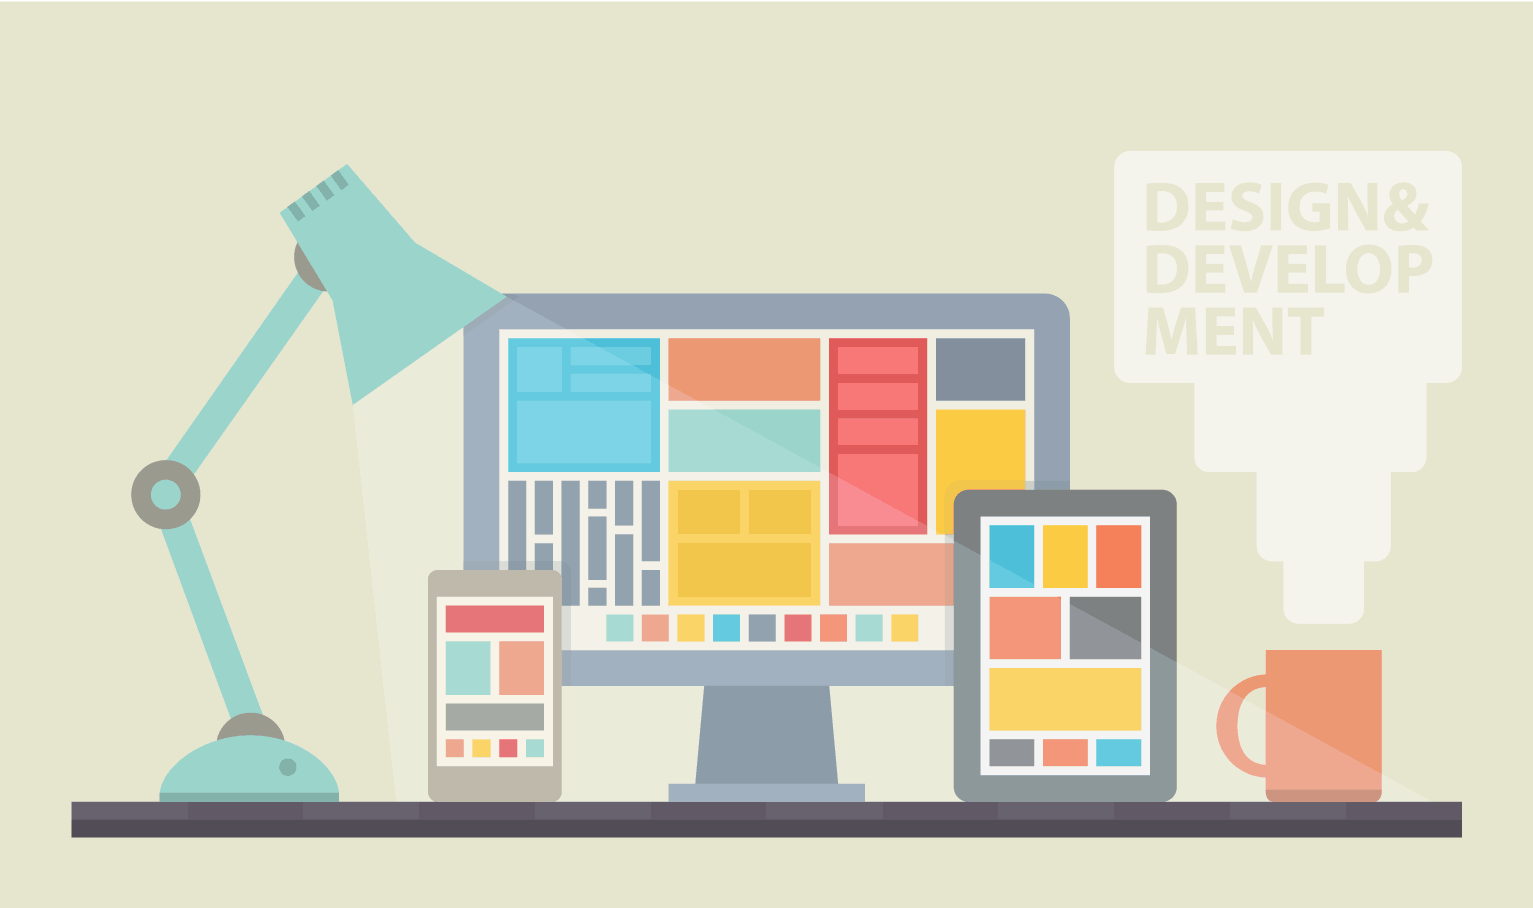 Web Development Services | Get Your Website Up and Running